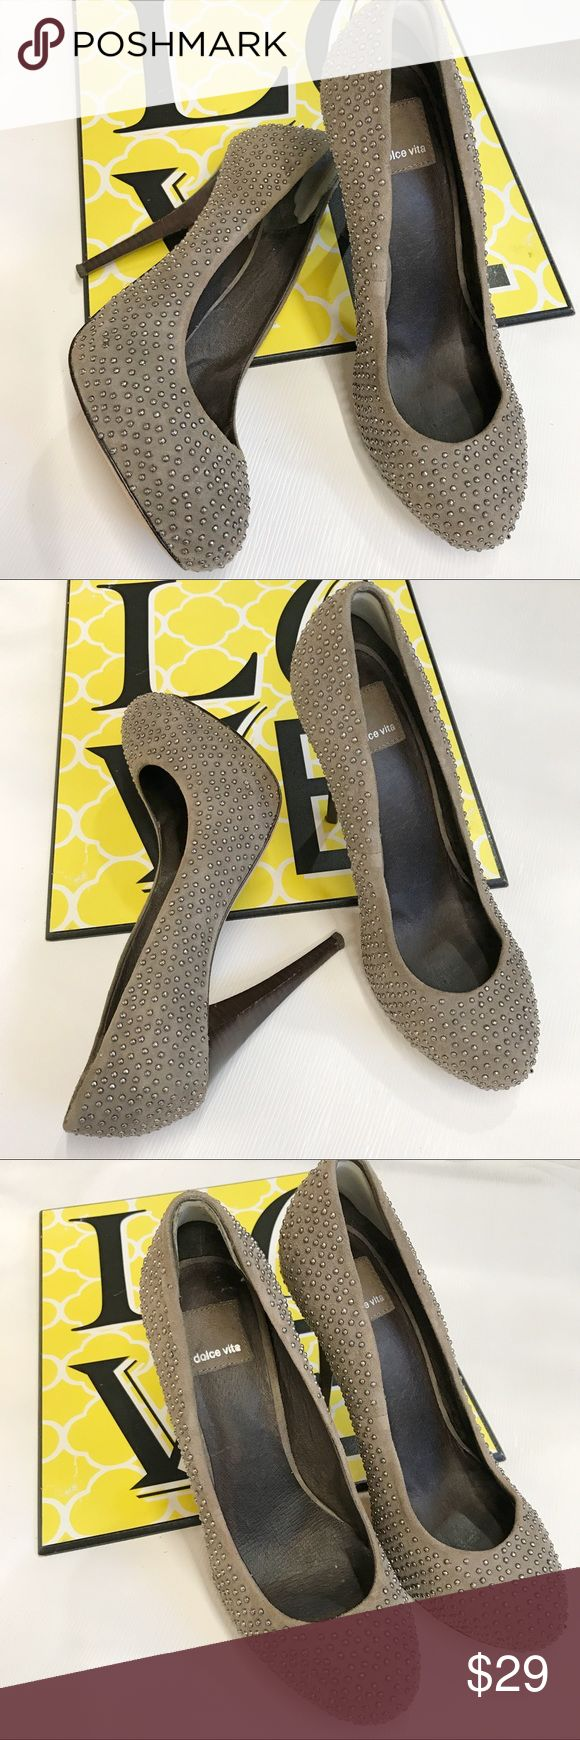 """Dolce Vita 